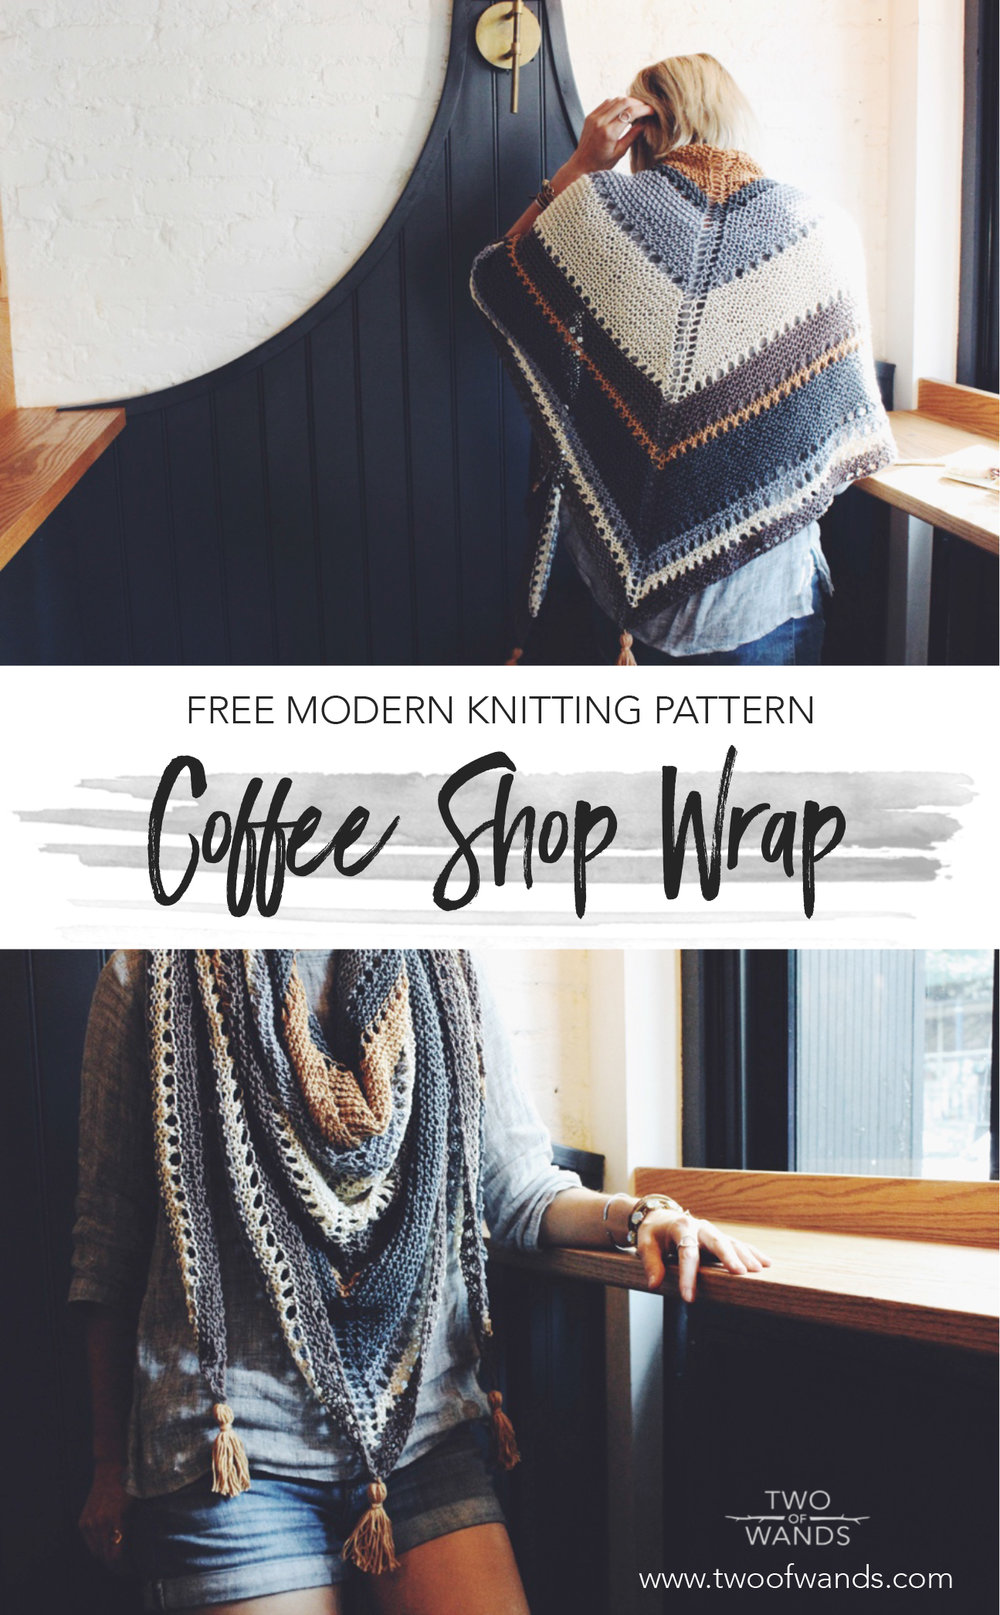 Coffee Shop Wrap Pattern by Two of Wands